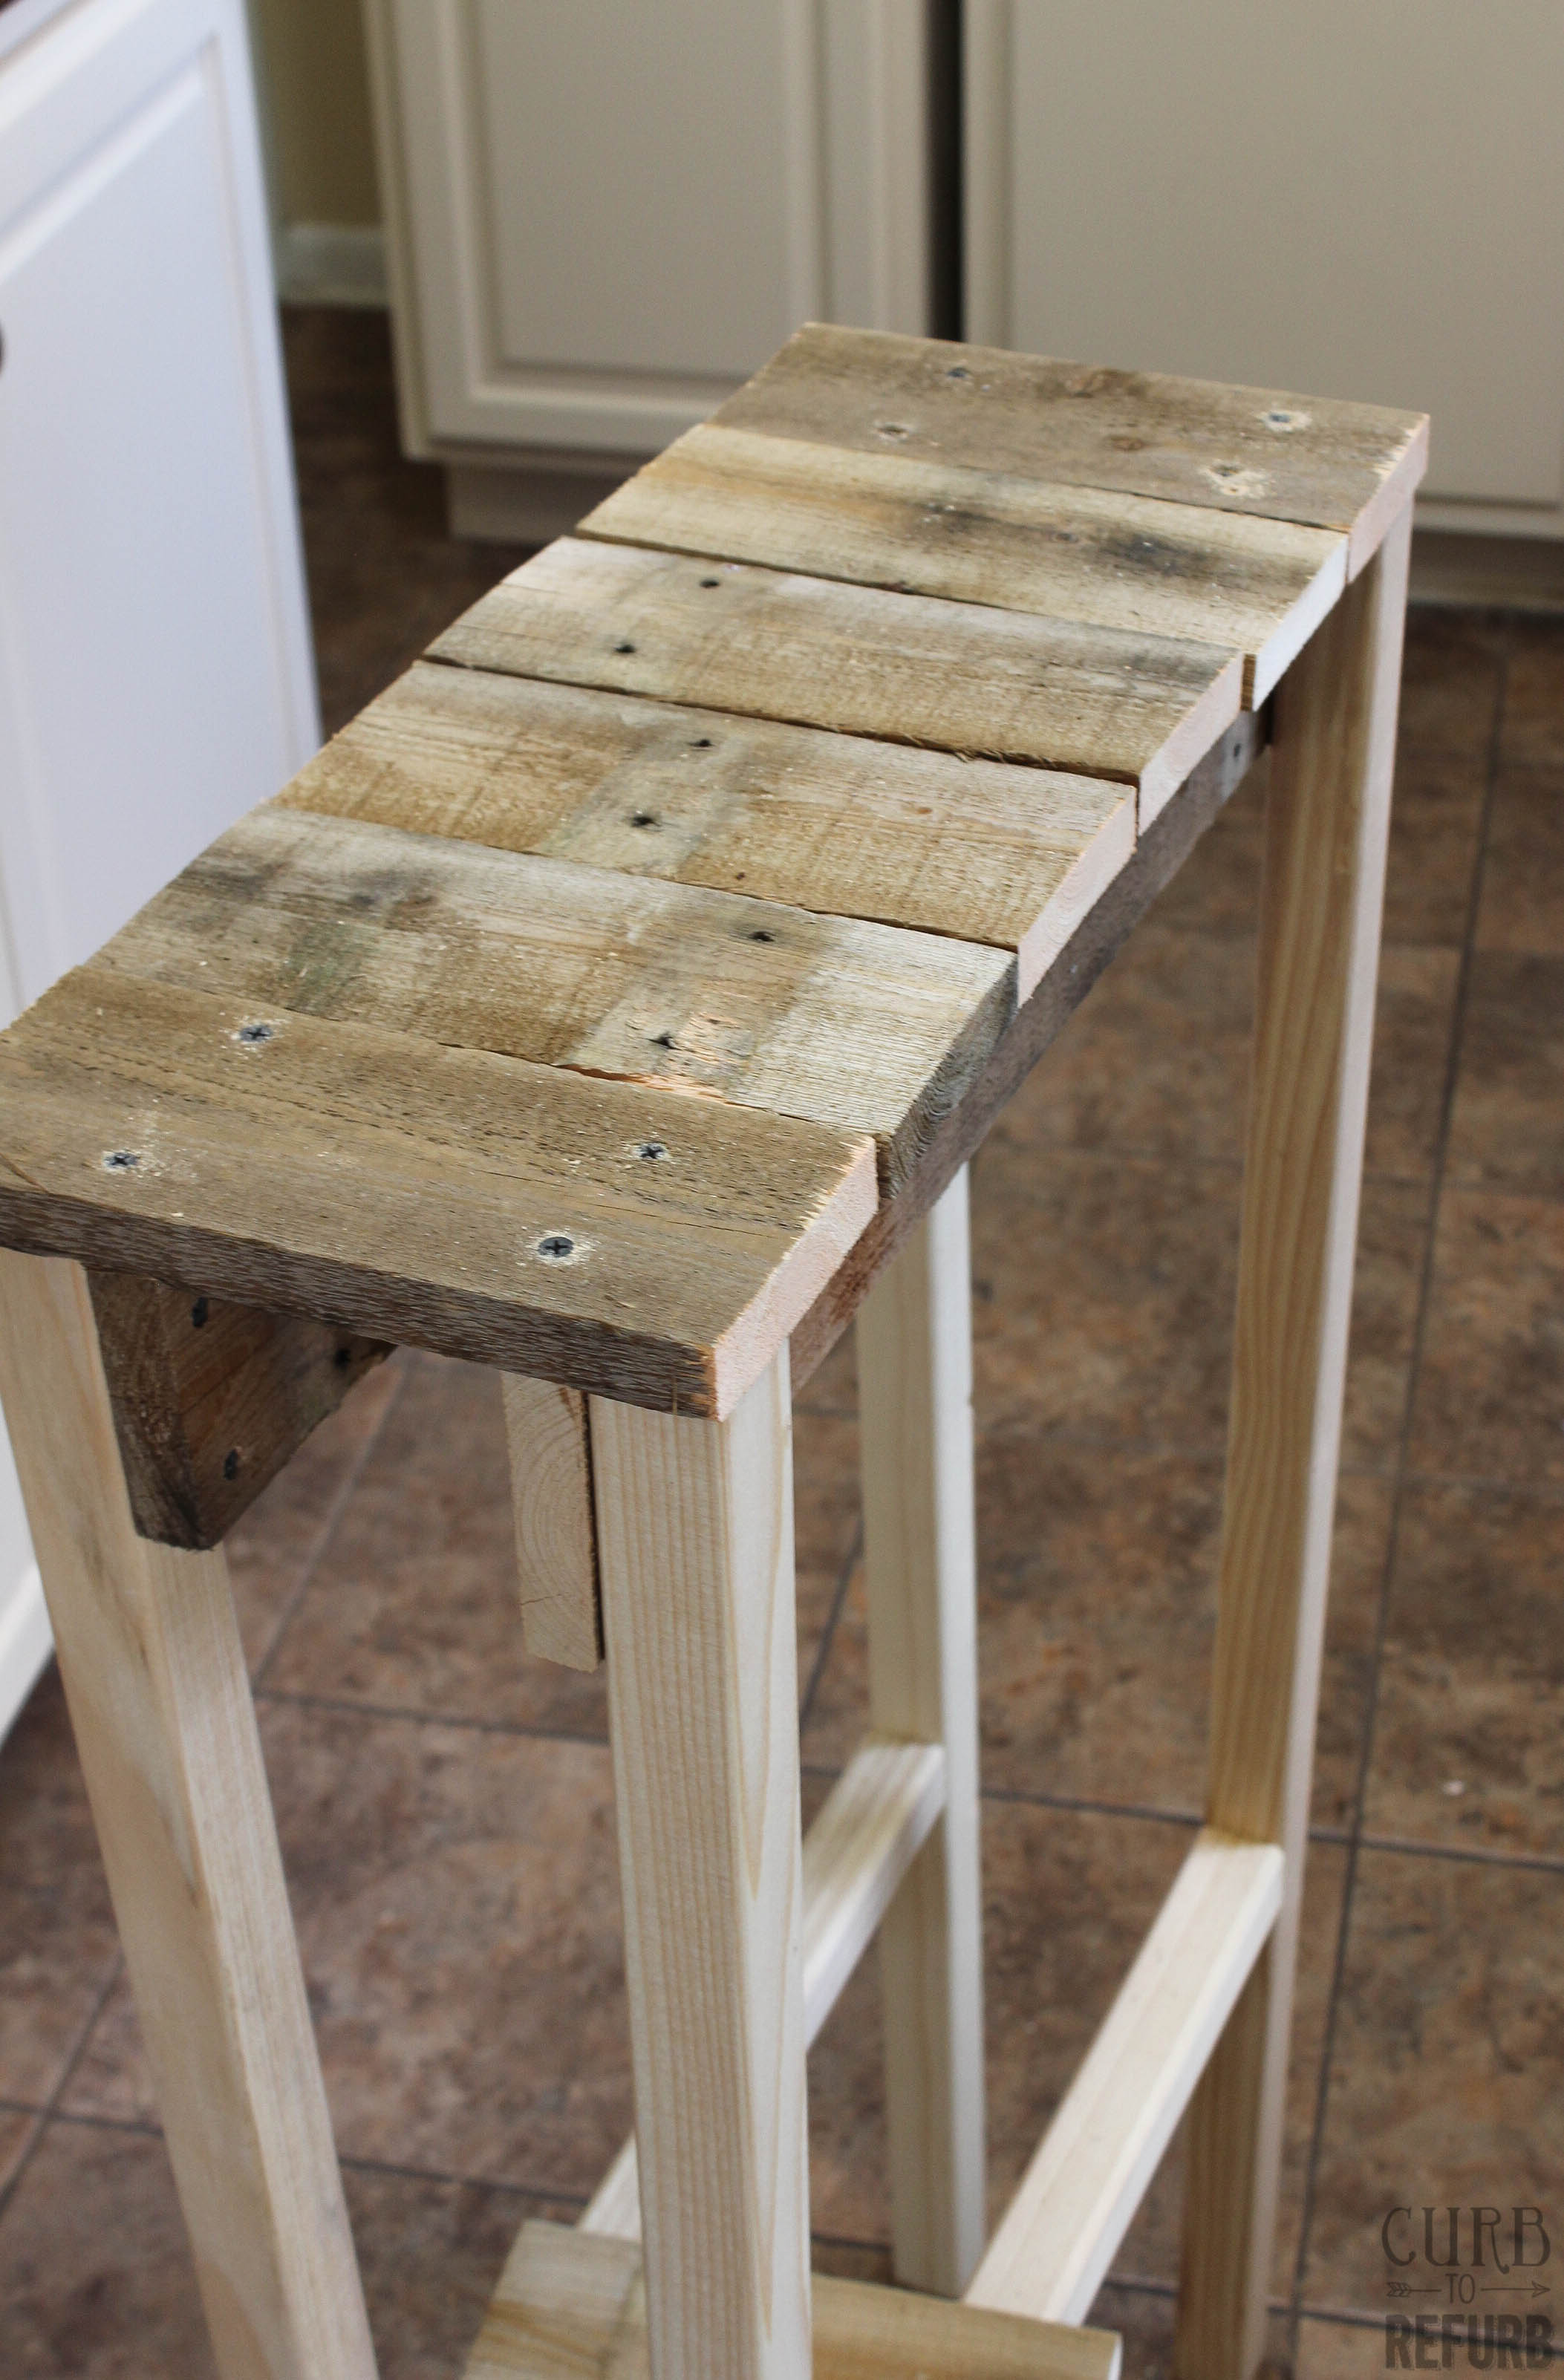 Diy Table With Pallets Remodelaholic Build A Pallet Table For Under 10